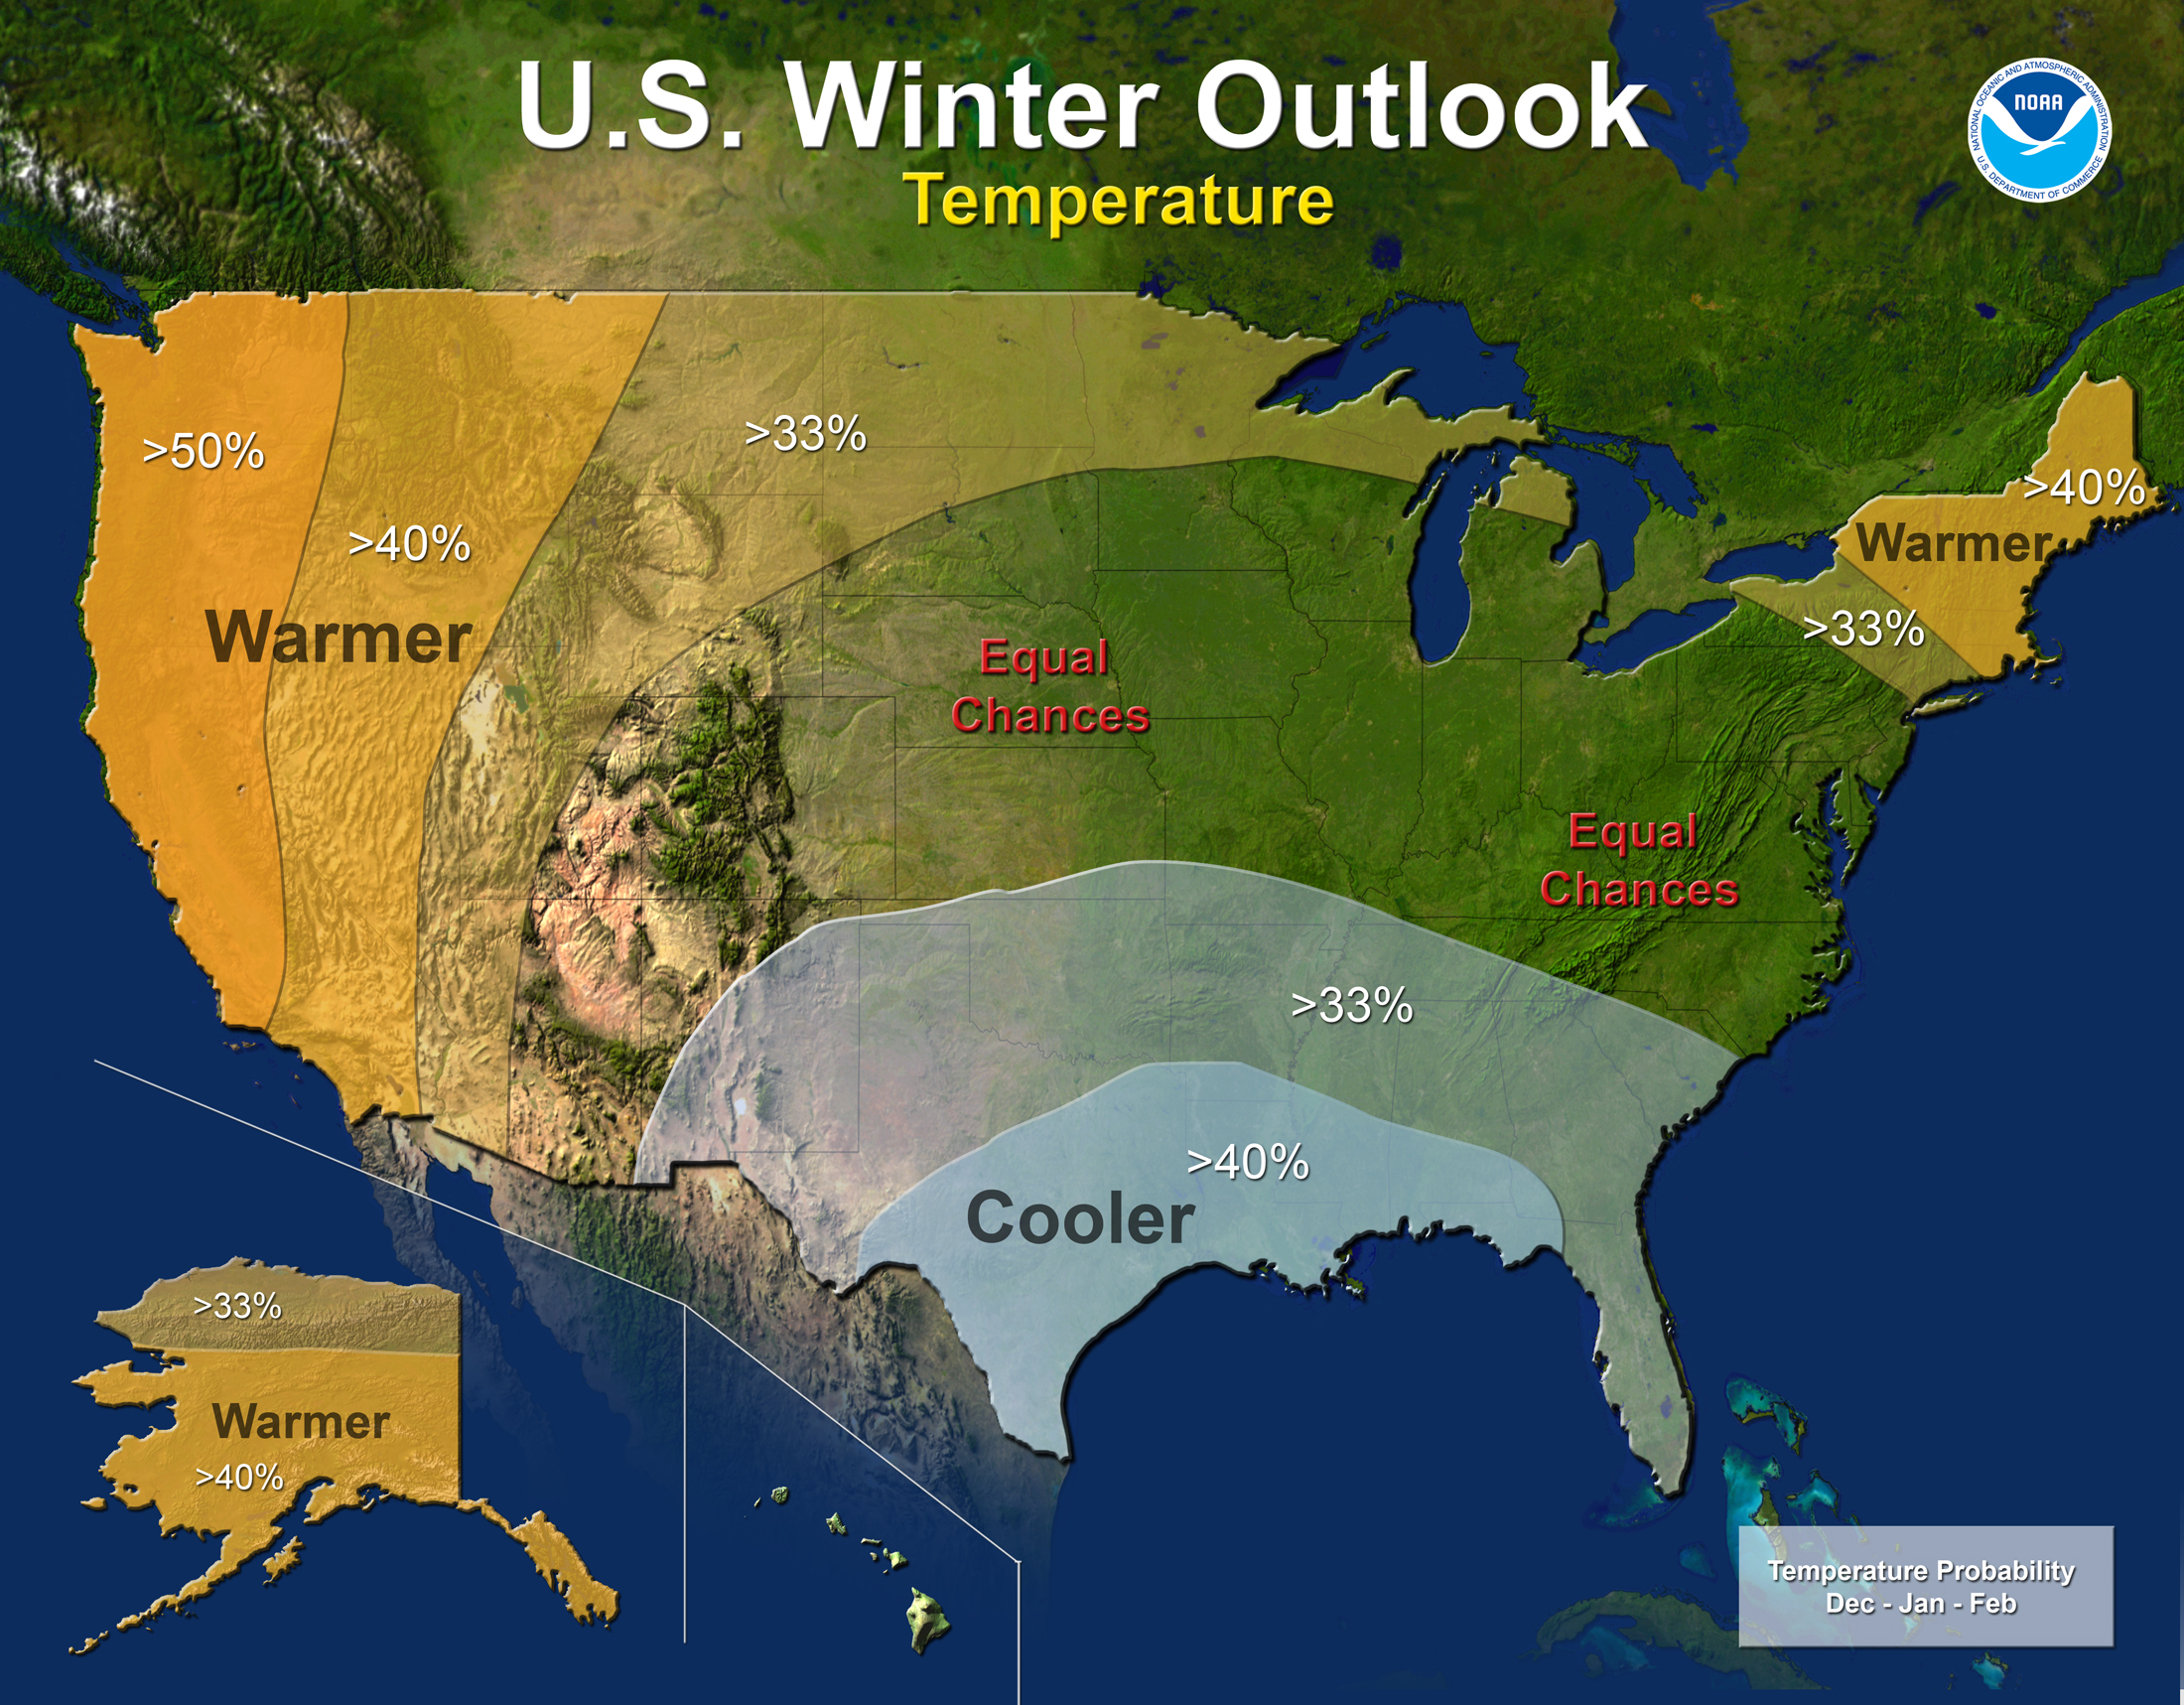 Winter Weather Forecast/Outlook - WataugaOnline.com